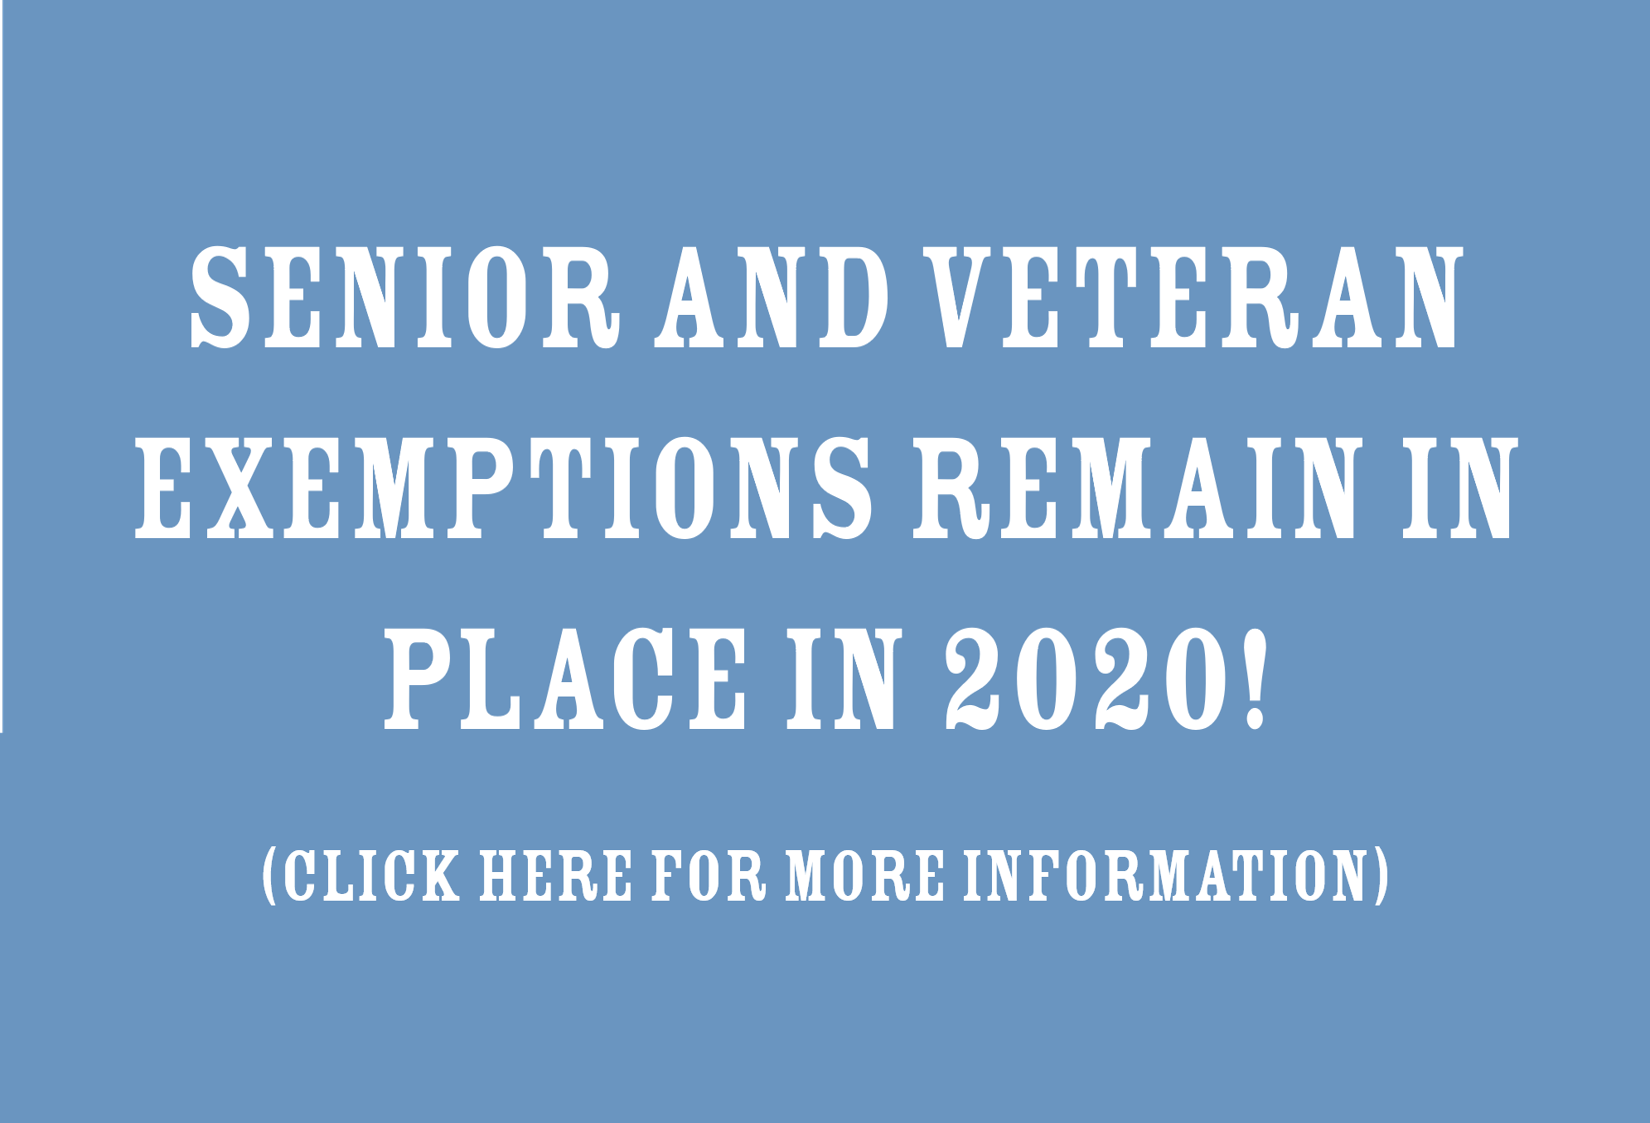 Senior and Veteran Tax Exemptions Remain in Place for 2020